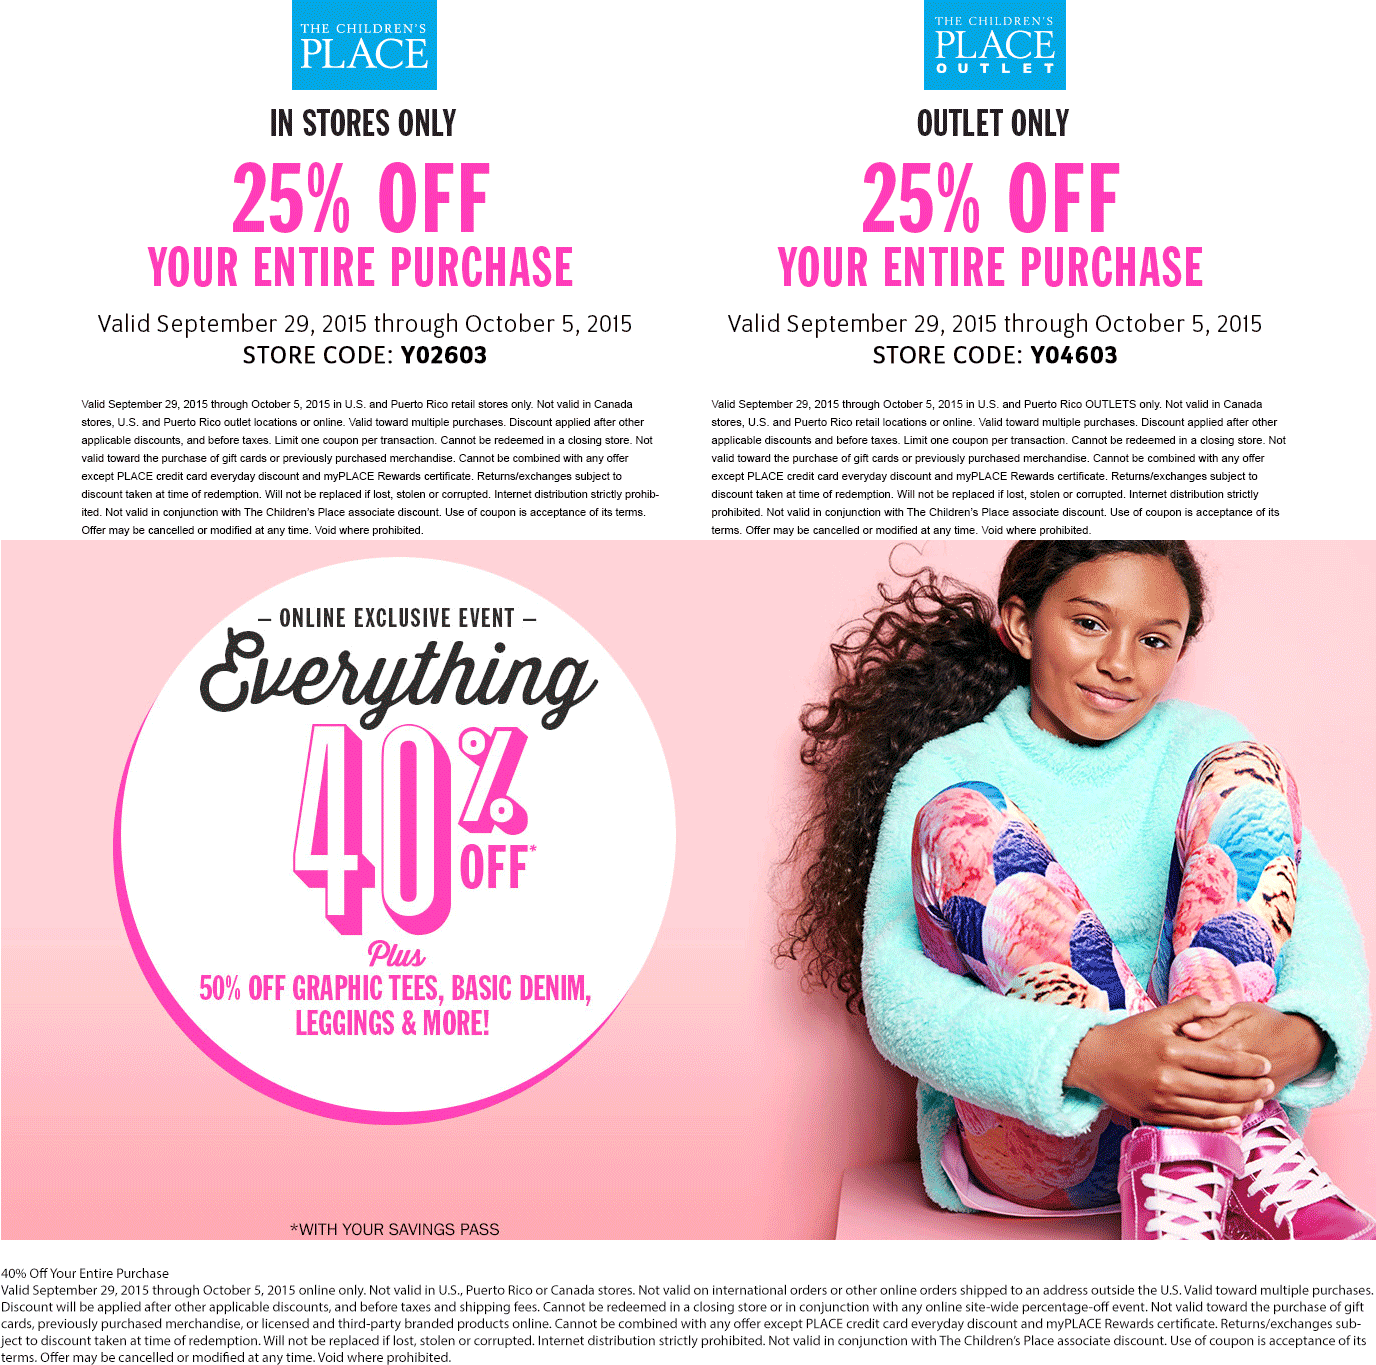 The Childrens Place Coupon March 2018 25% off at The Childrens Place & outlet locations, or 40% online via promo code ONLINE40